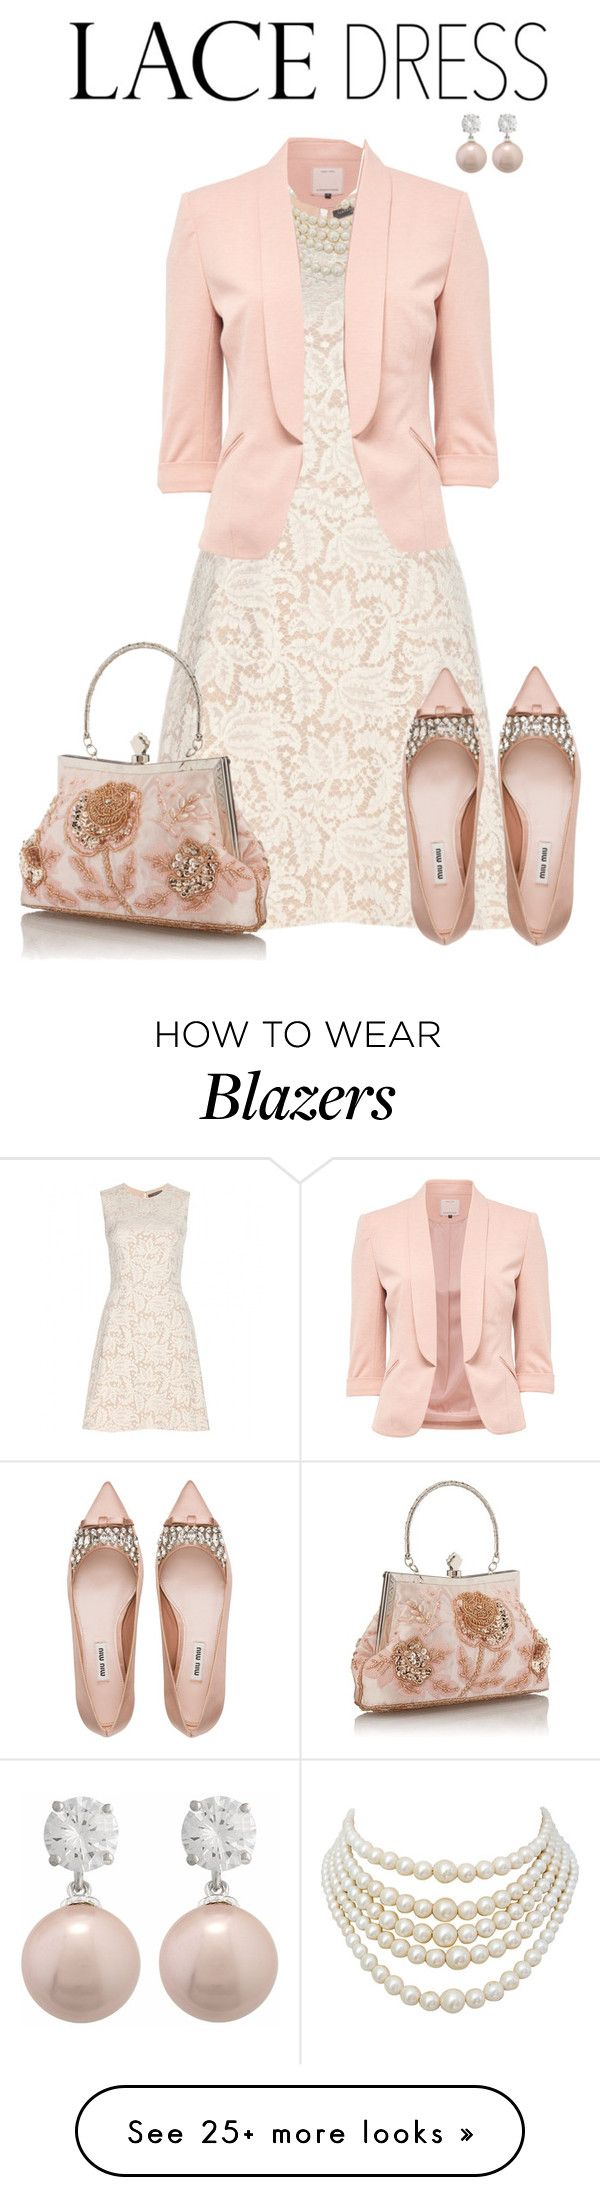 """""""Untitled #3816"""" by barones-tania on Polyvore featuring Alexander McQueen, Miu Miu and Christian Dior"""